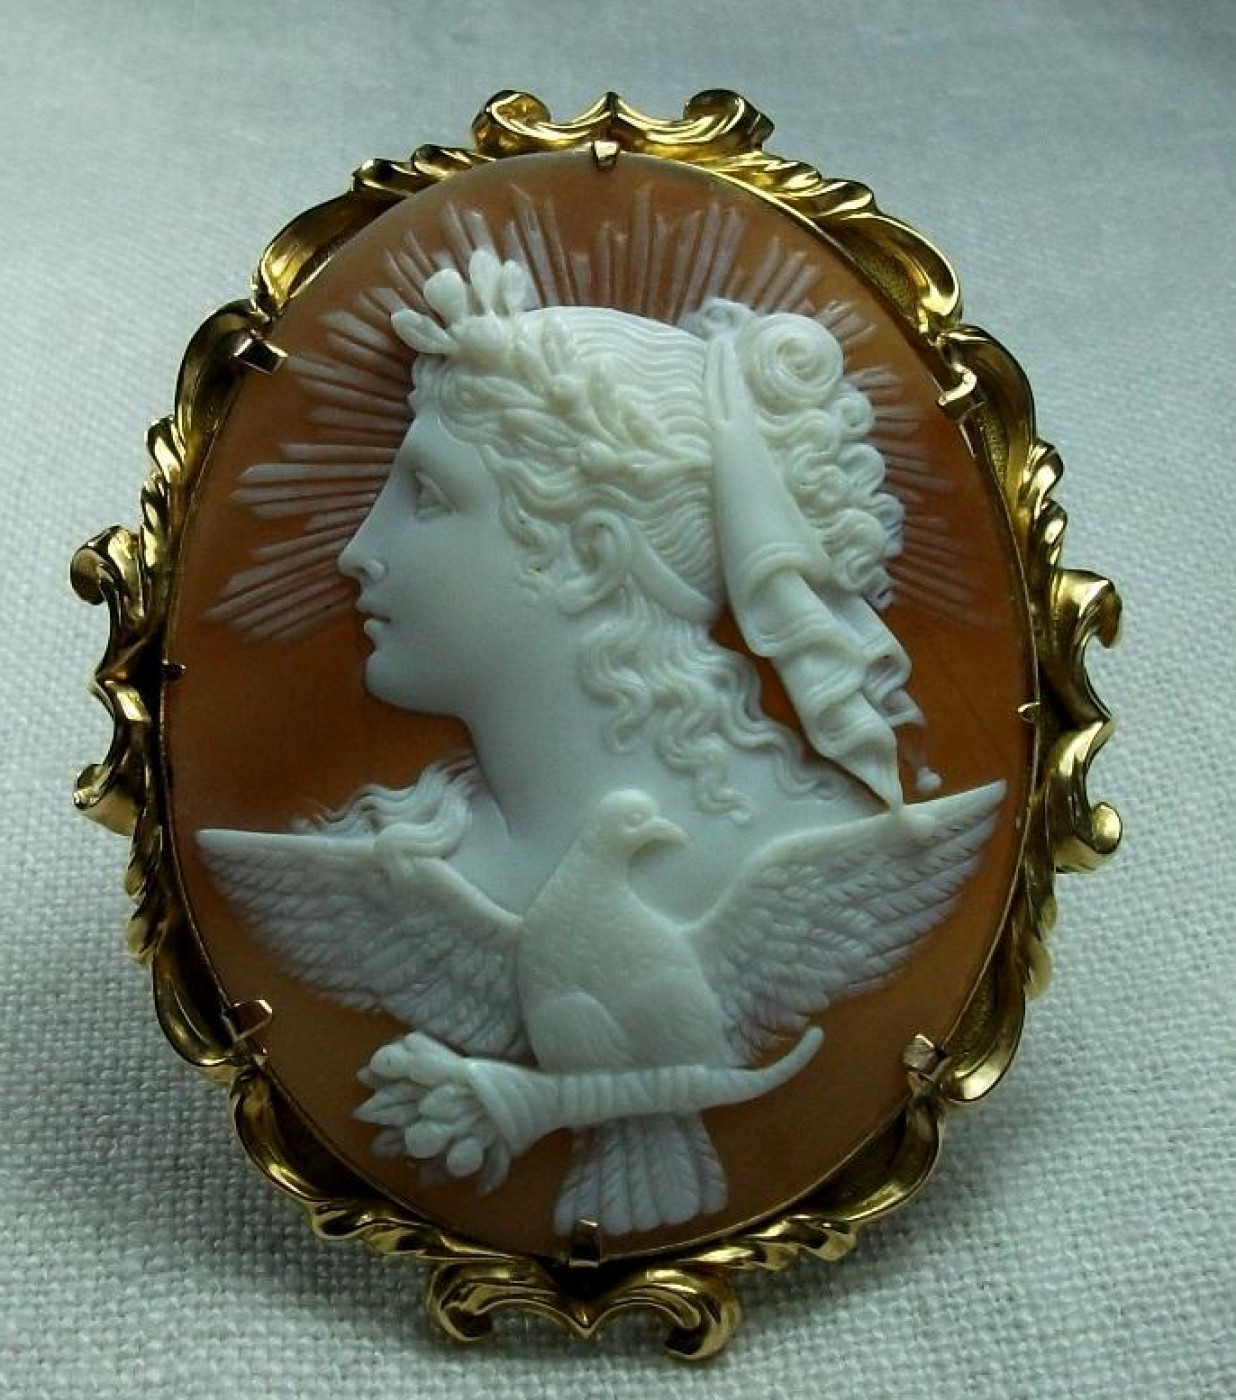 Wonderful Cameo The Allegory of the Day